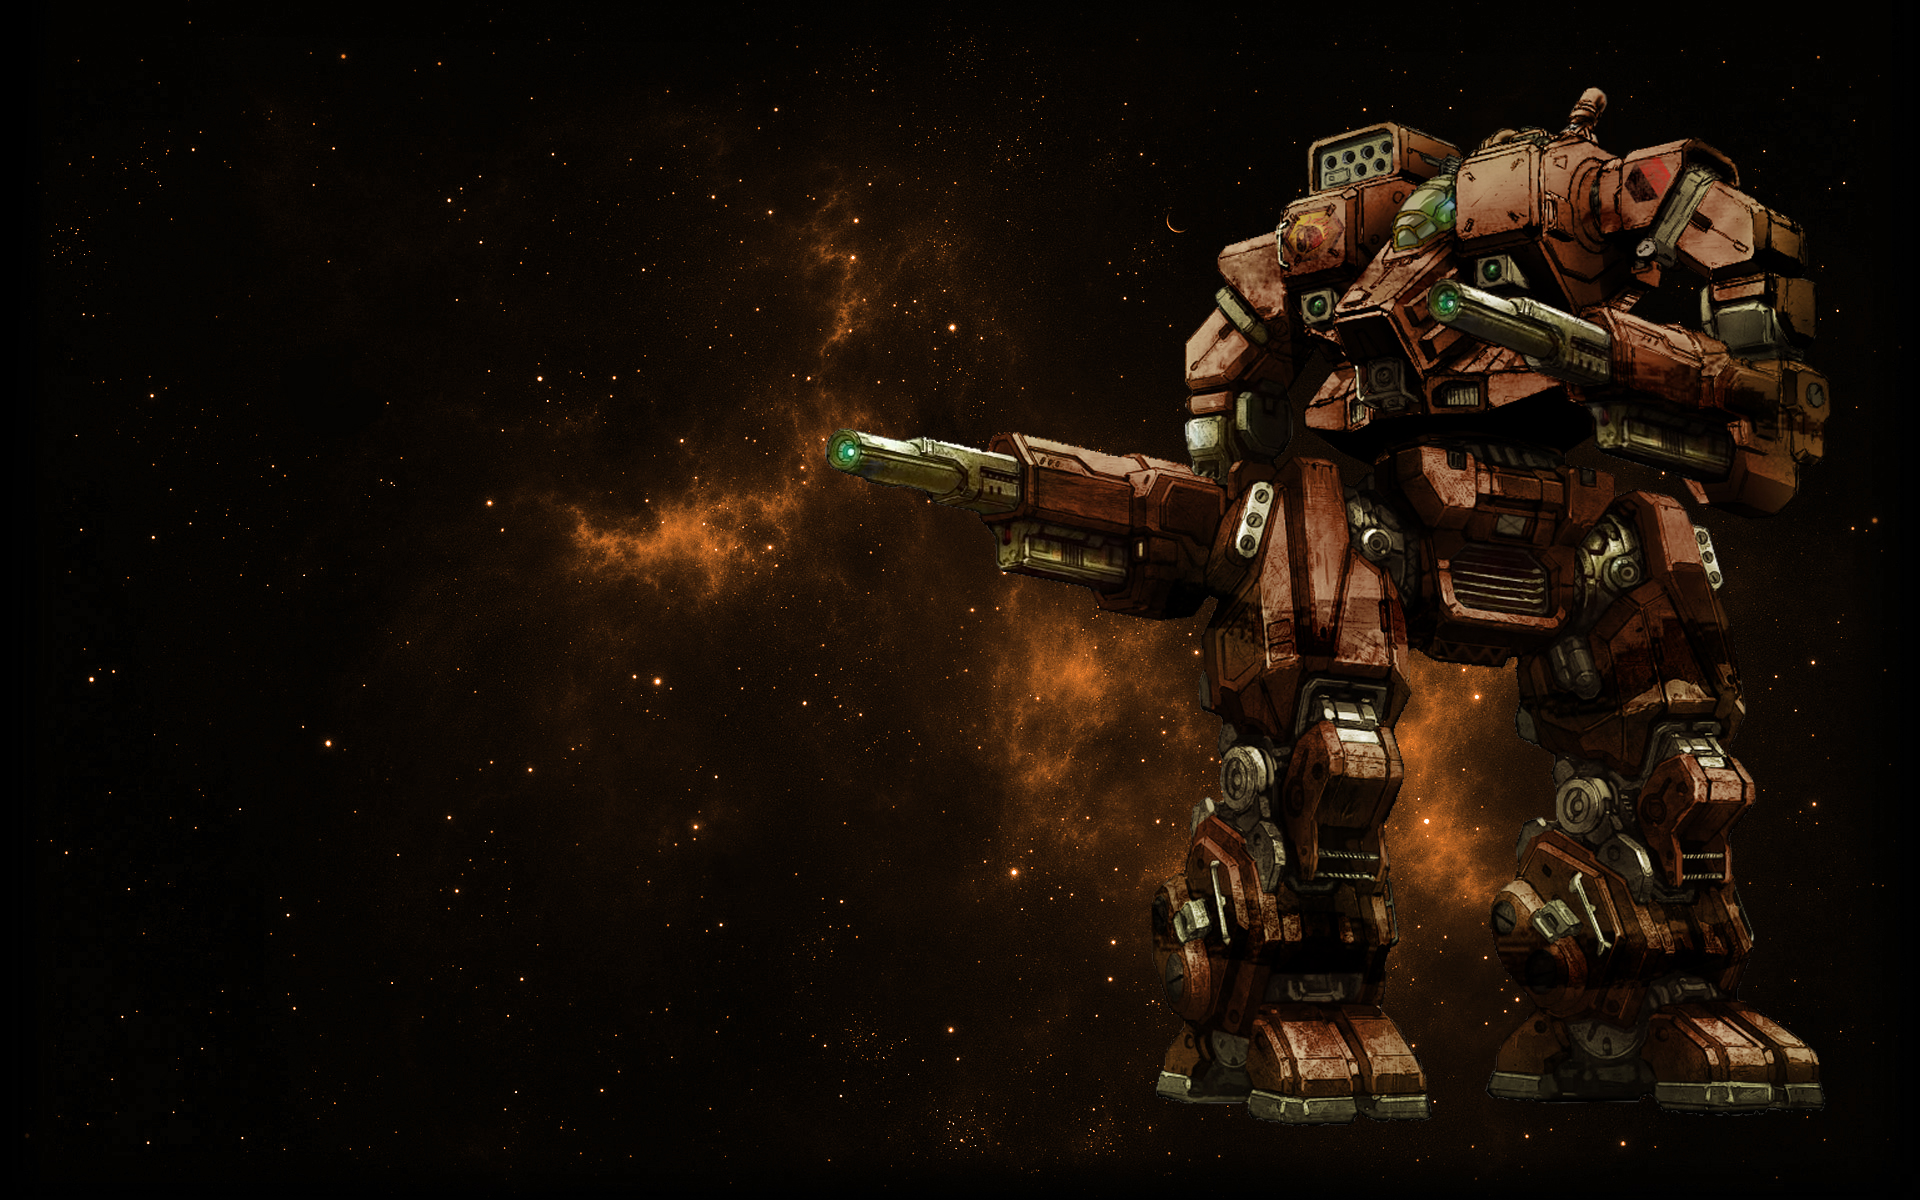 MWO unnoficial Hellbringer Loki Wallpaper by Odanan on deviantART 1920x1200